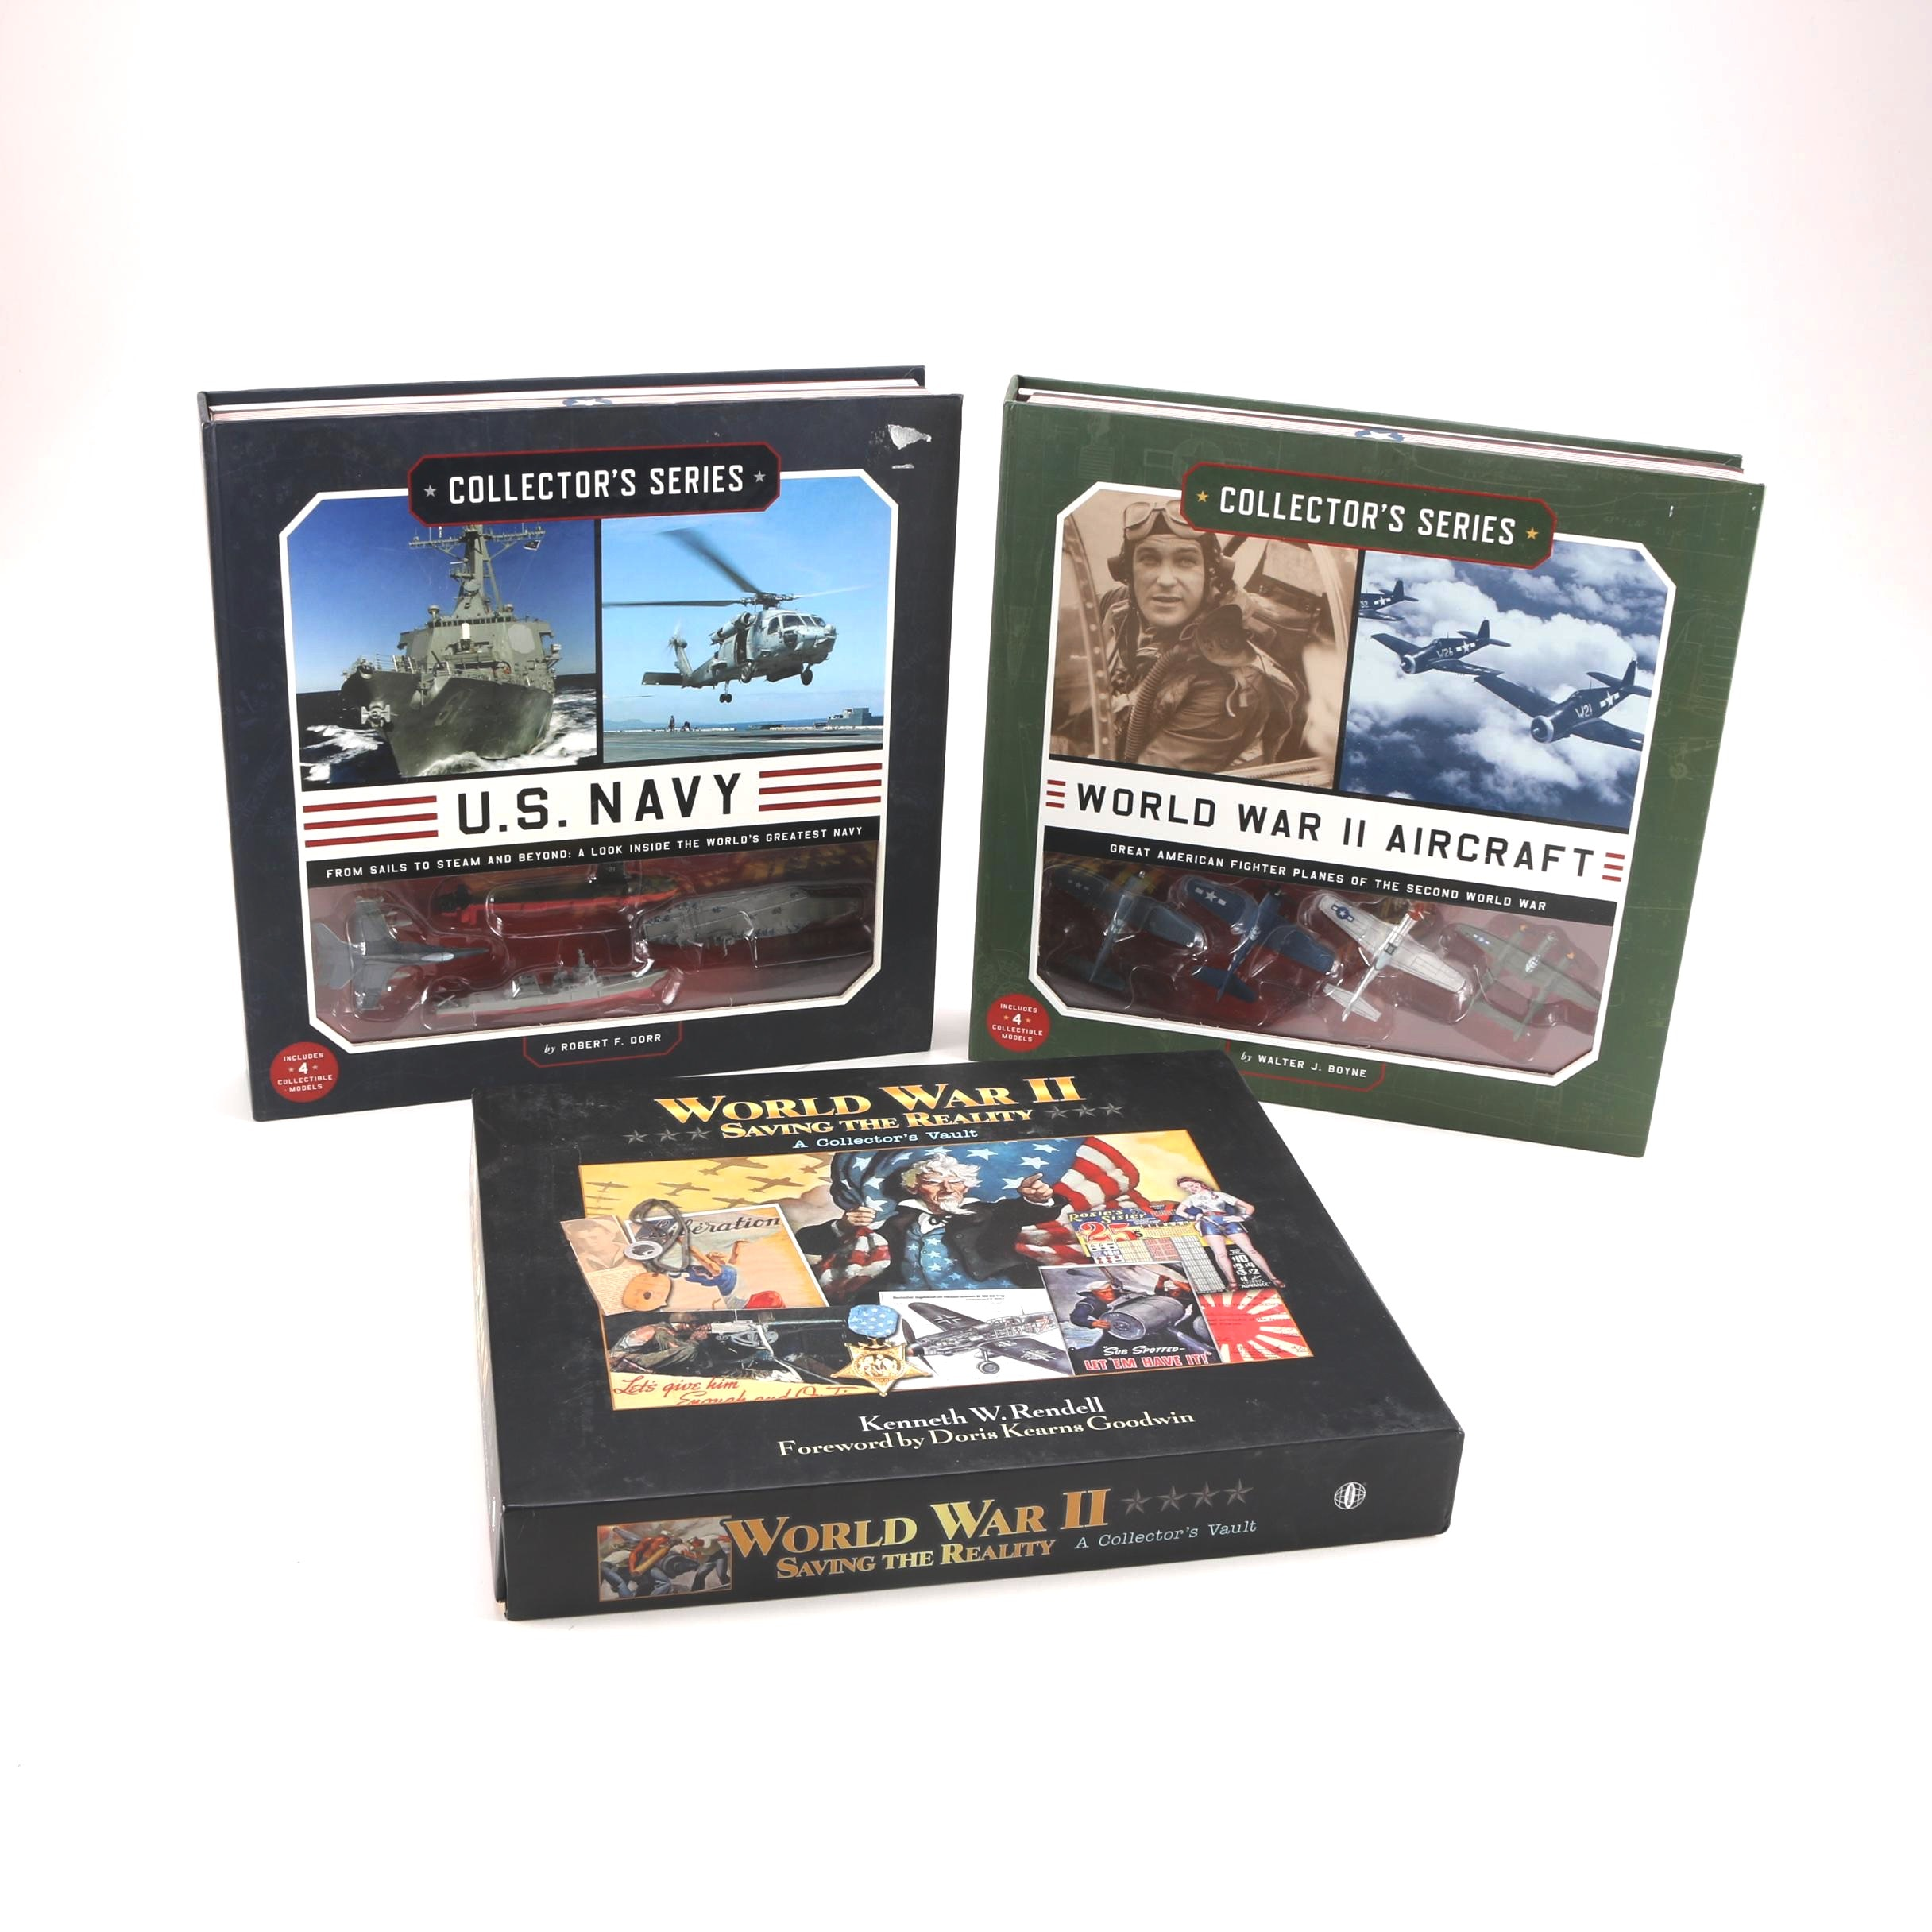 """World War II """"Saving The Reality"""" Set and Pair of WWII Navy and Air Force Books"""